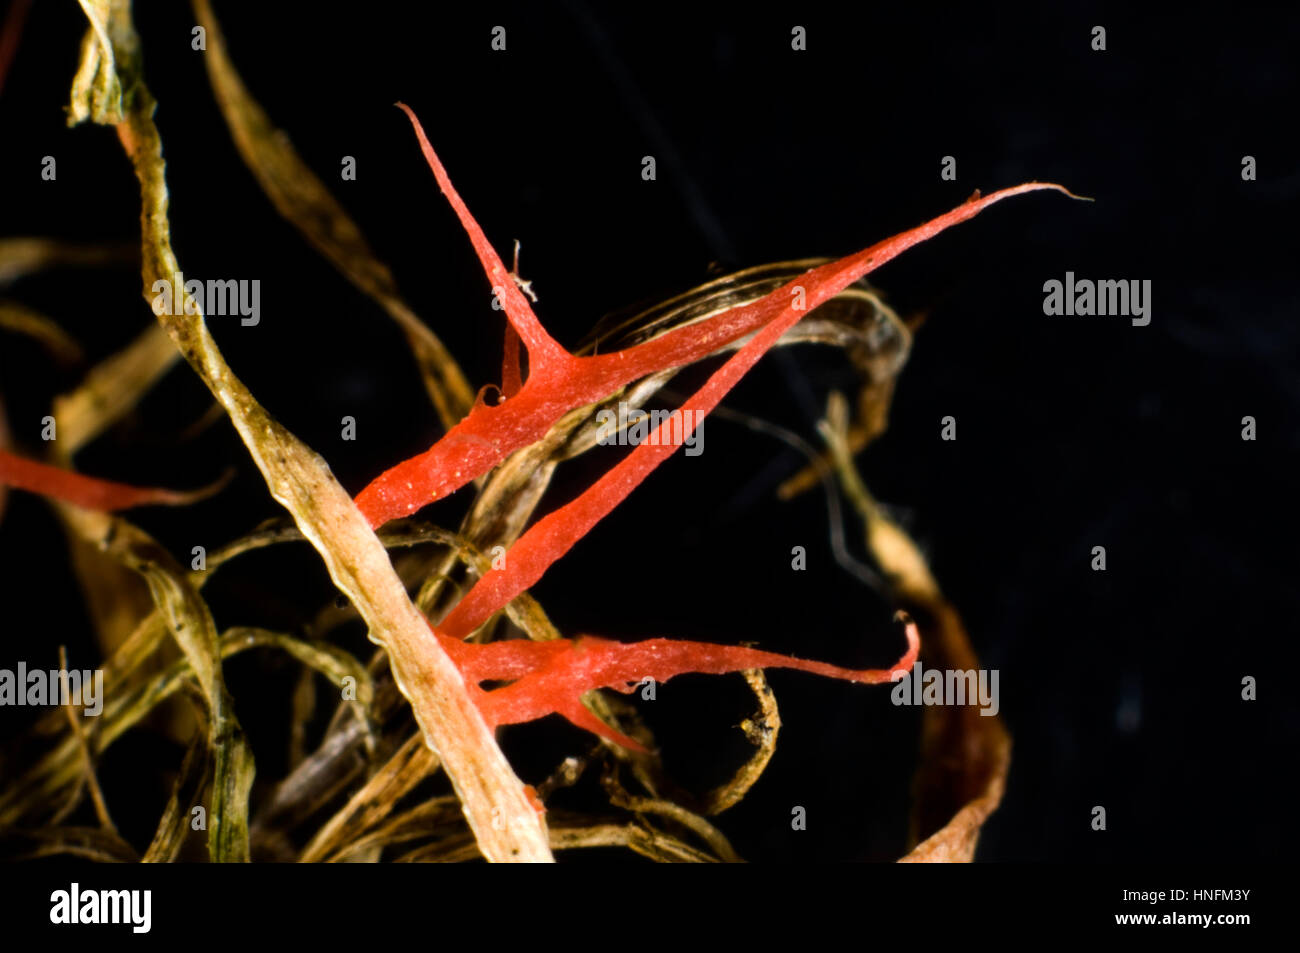 Red thread, Laetisaria fuciformis, red thread-like stromata from the disease on lawn grass - Stock Image